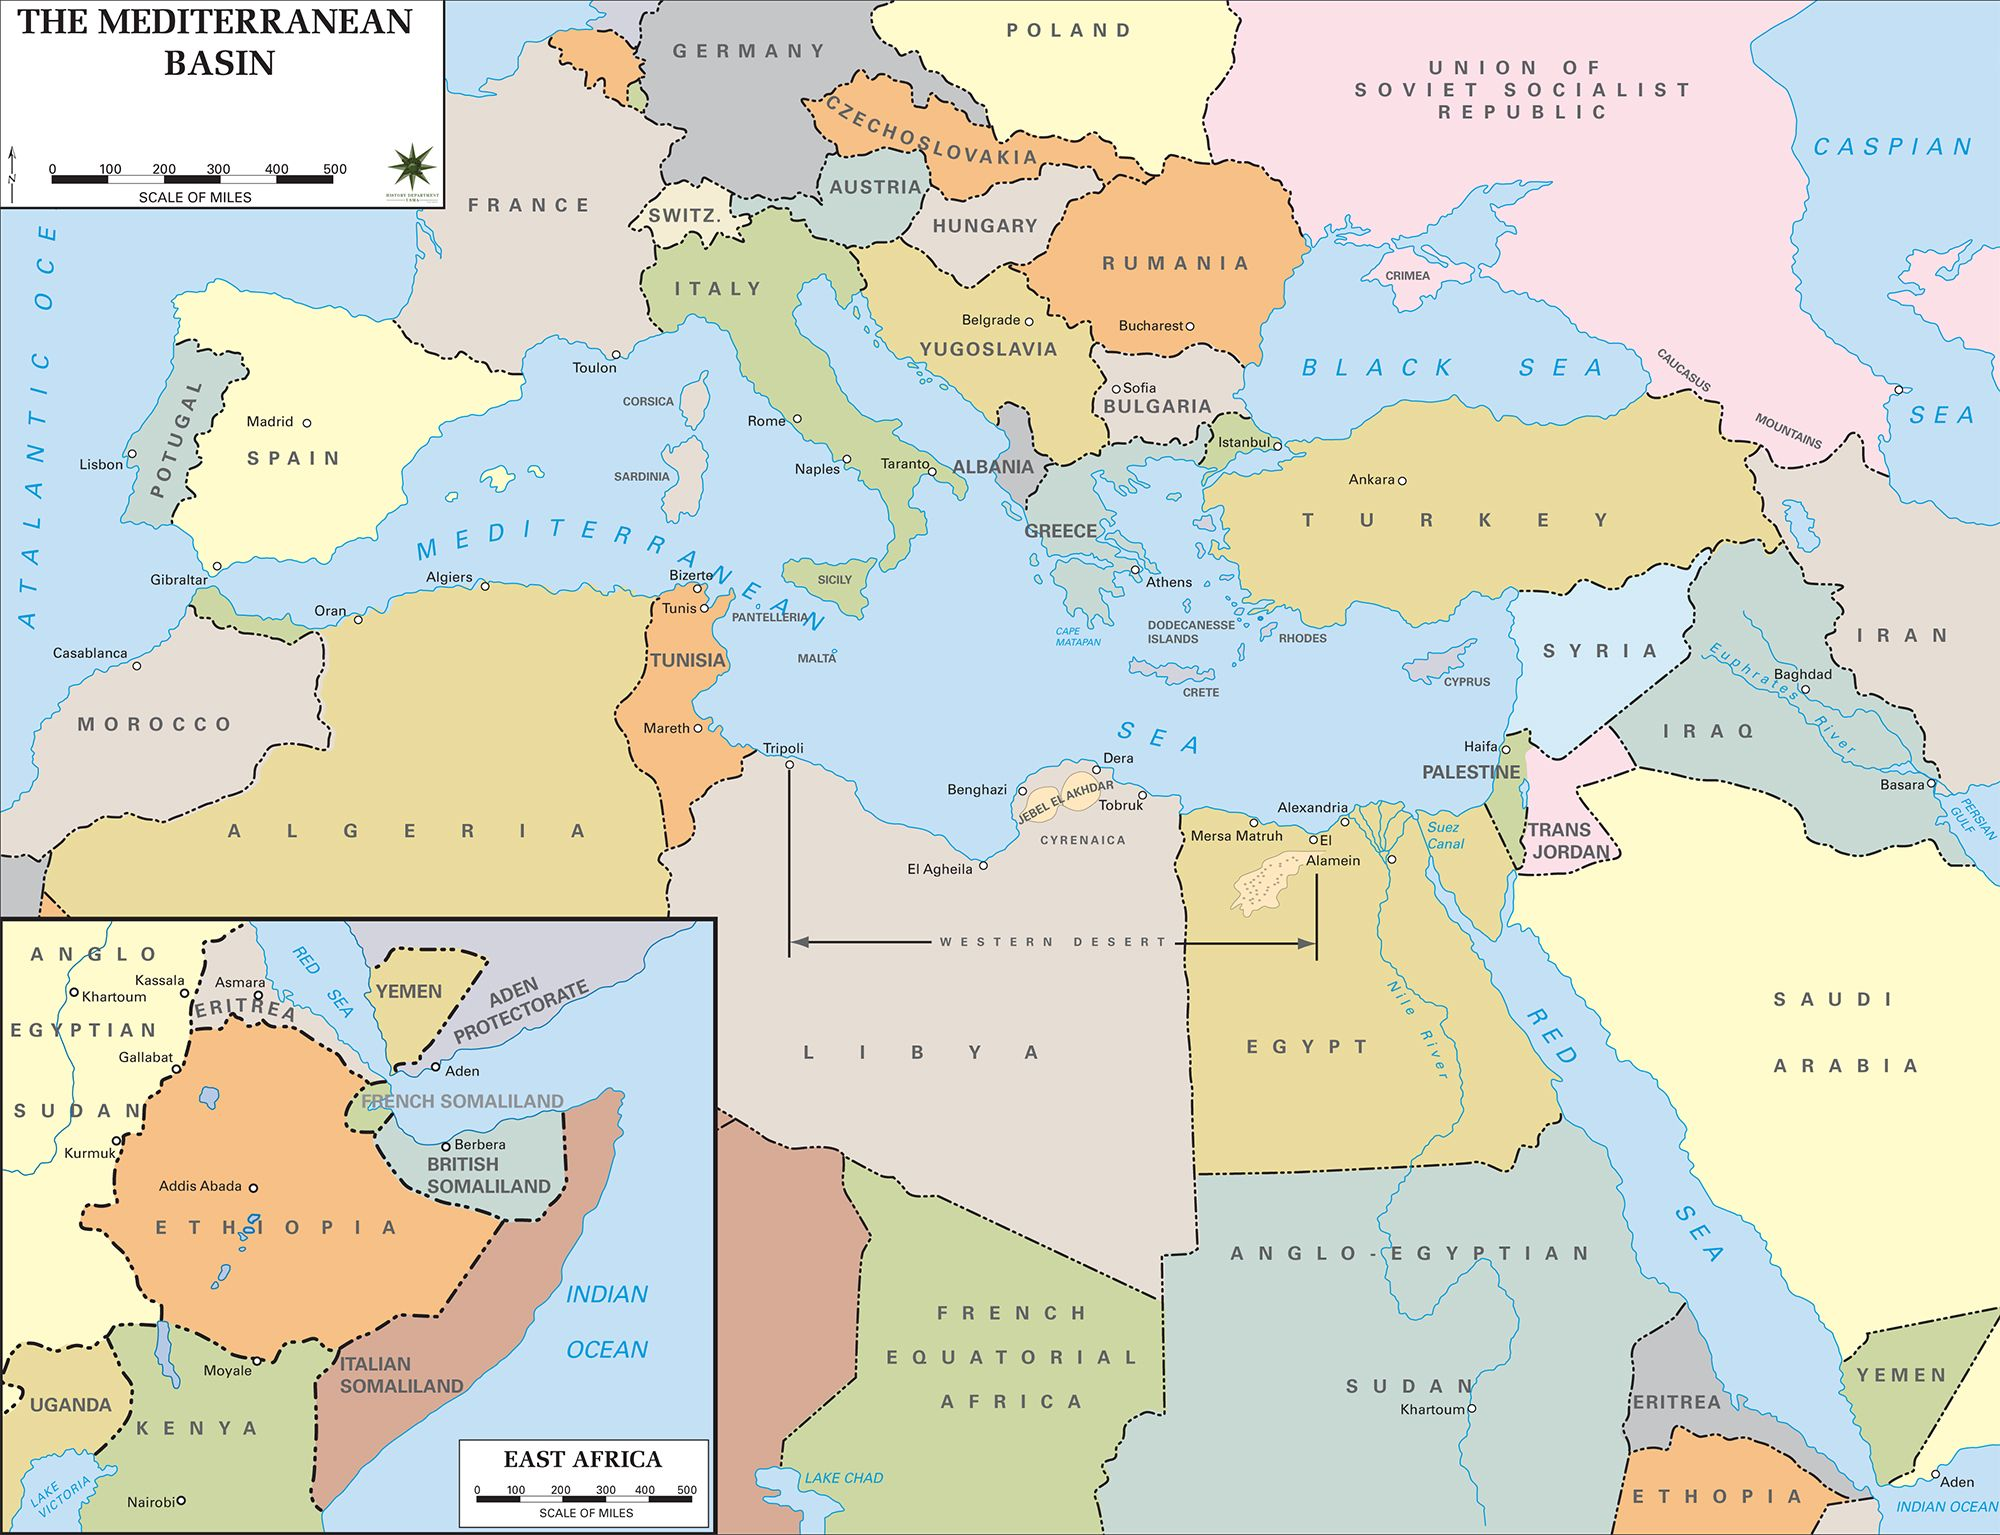 Wwii political map the countries bordering the mediterranean sea wwii political map the countries bordering the mediterranean sea southern europe asia gumiabroncs Image collections